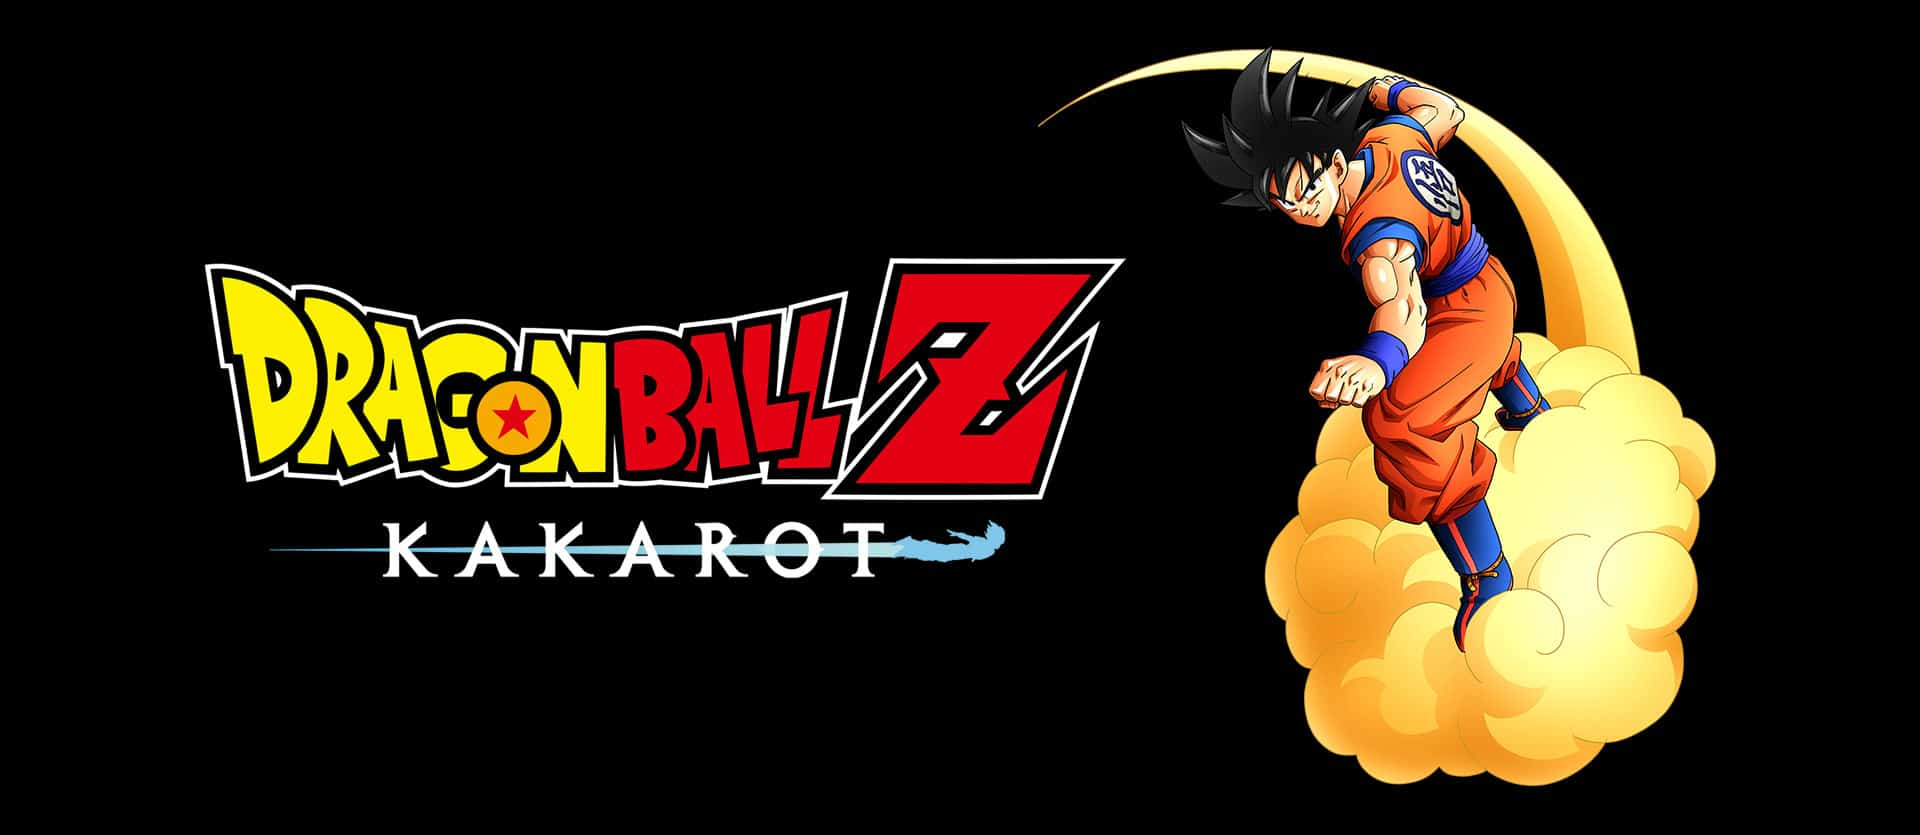 Dragon Ball Game Project Z Will be called Dragon Ball Z Kakarot, Reveals New Trailer.